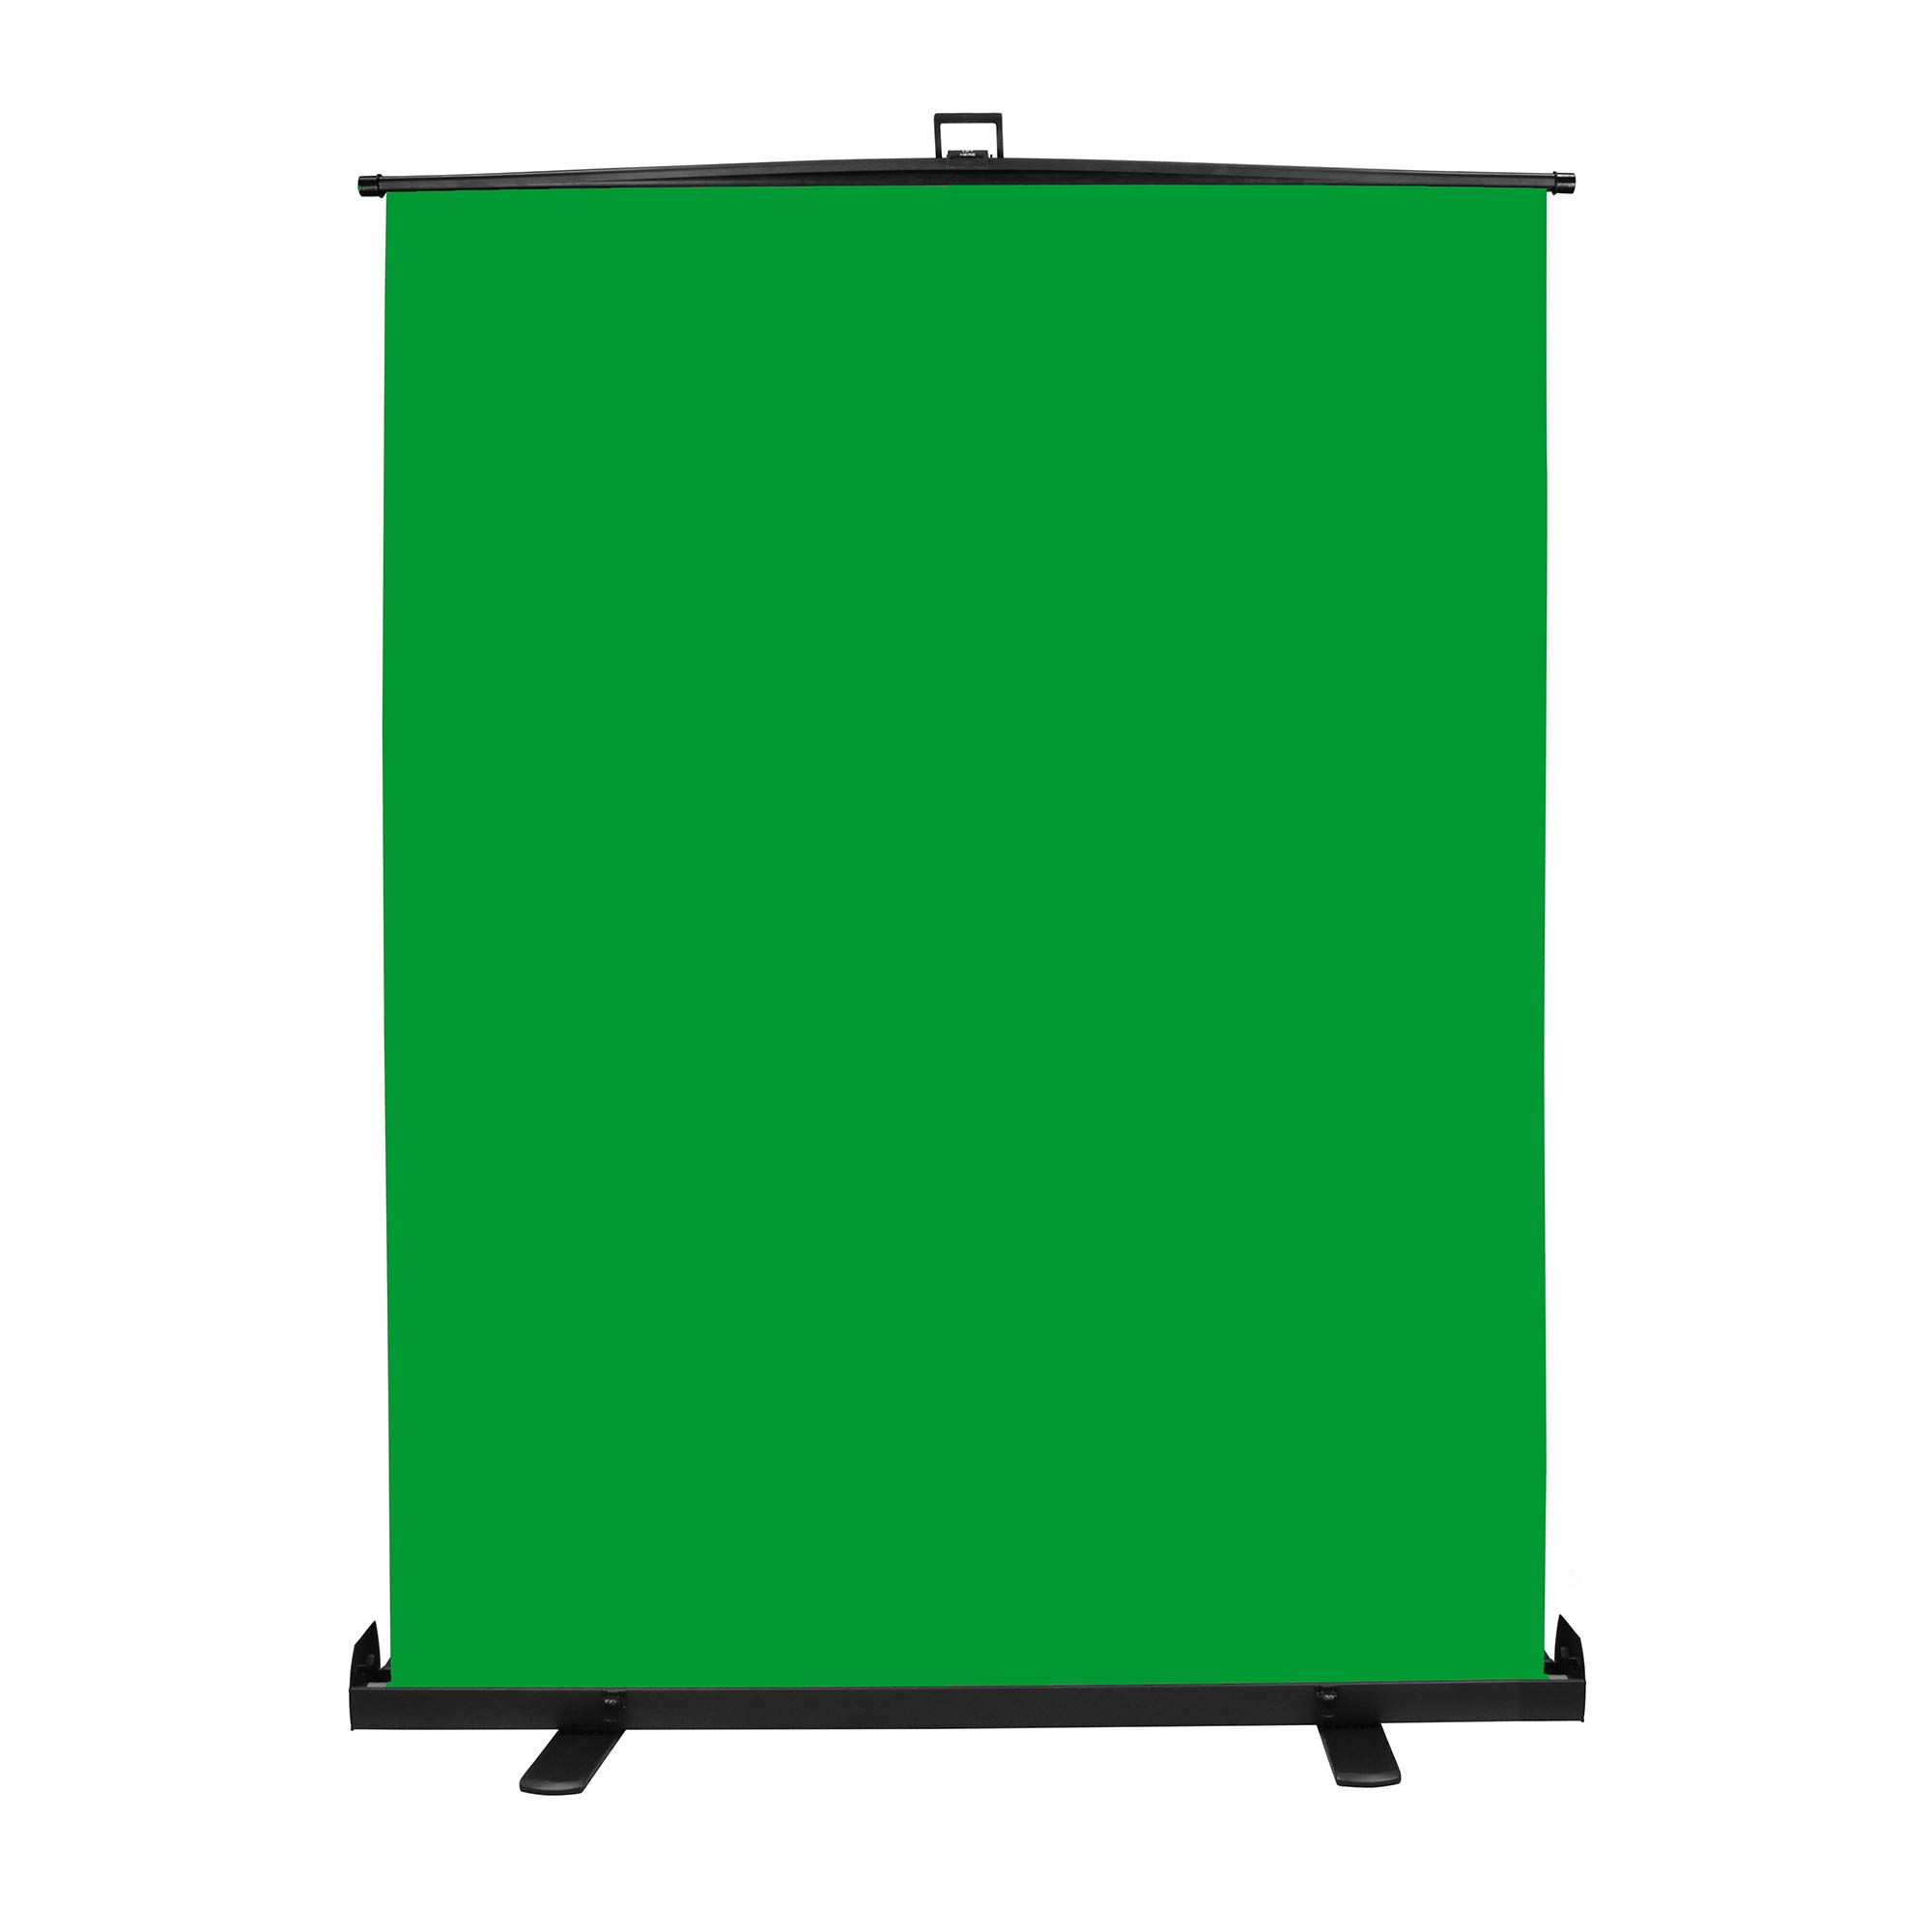 Emart Green Screen, Collapsible Chromakey Panel for Photo Backdrop Video Studio,Portable Pull Up Wrinkle-Resistant Greenscreen Background, Auto-Locking Air Cushion Frame, Solid Safety Aluminium Base by EMART